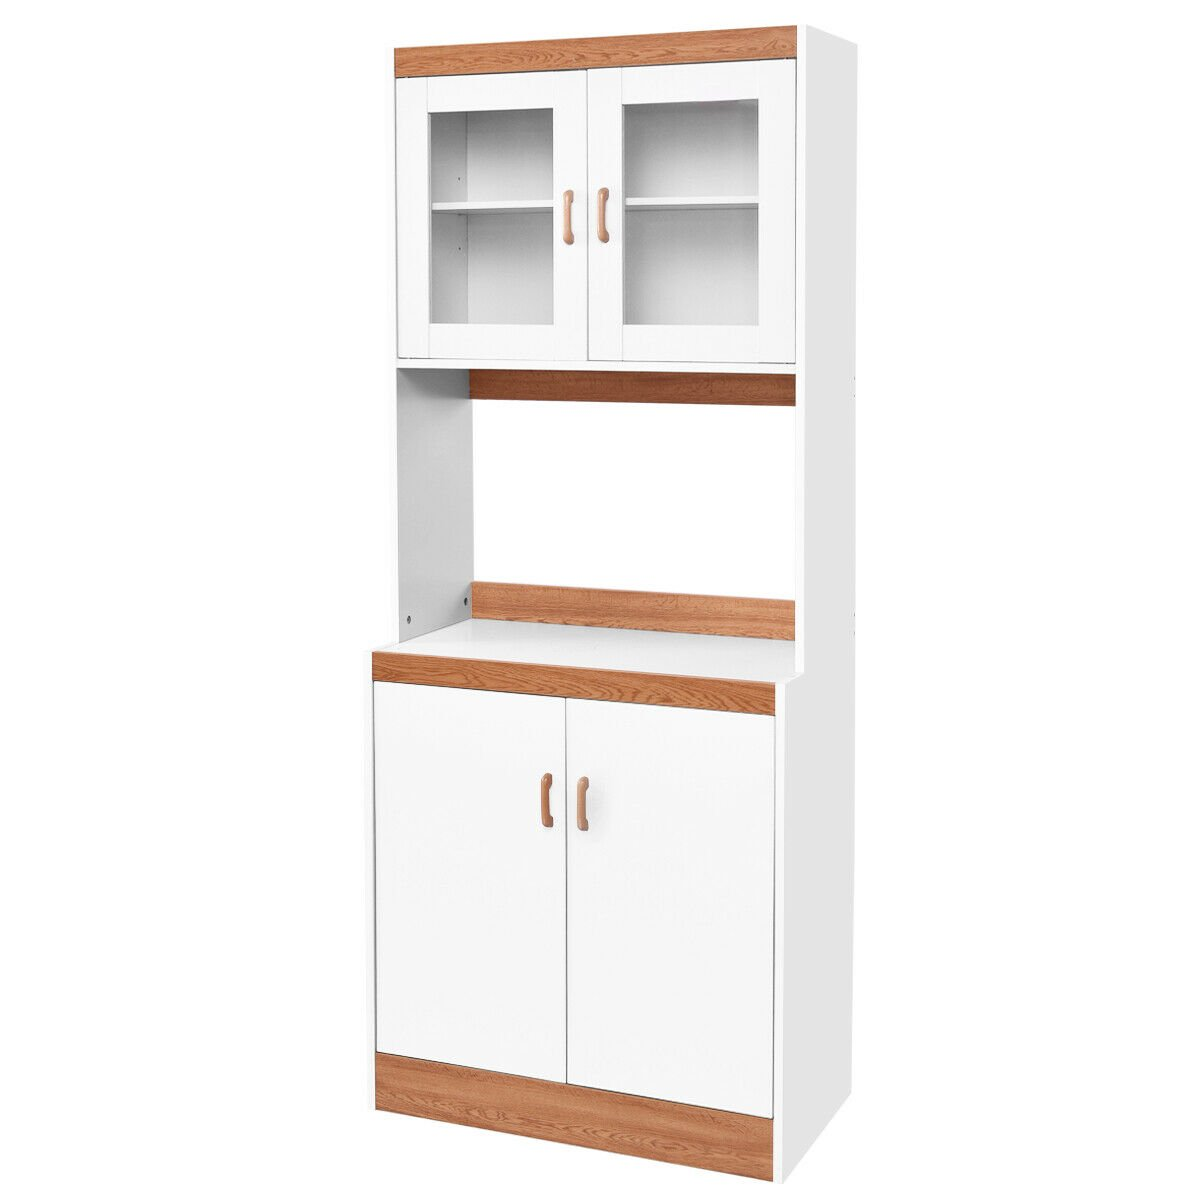 Gymax Tall Microwave Cart Stand Kitchen Storage Cabinet Shelves